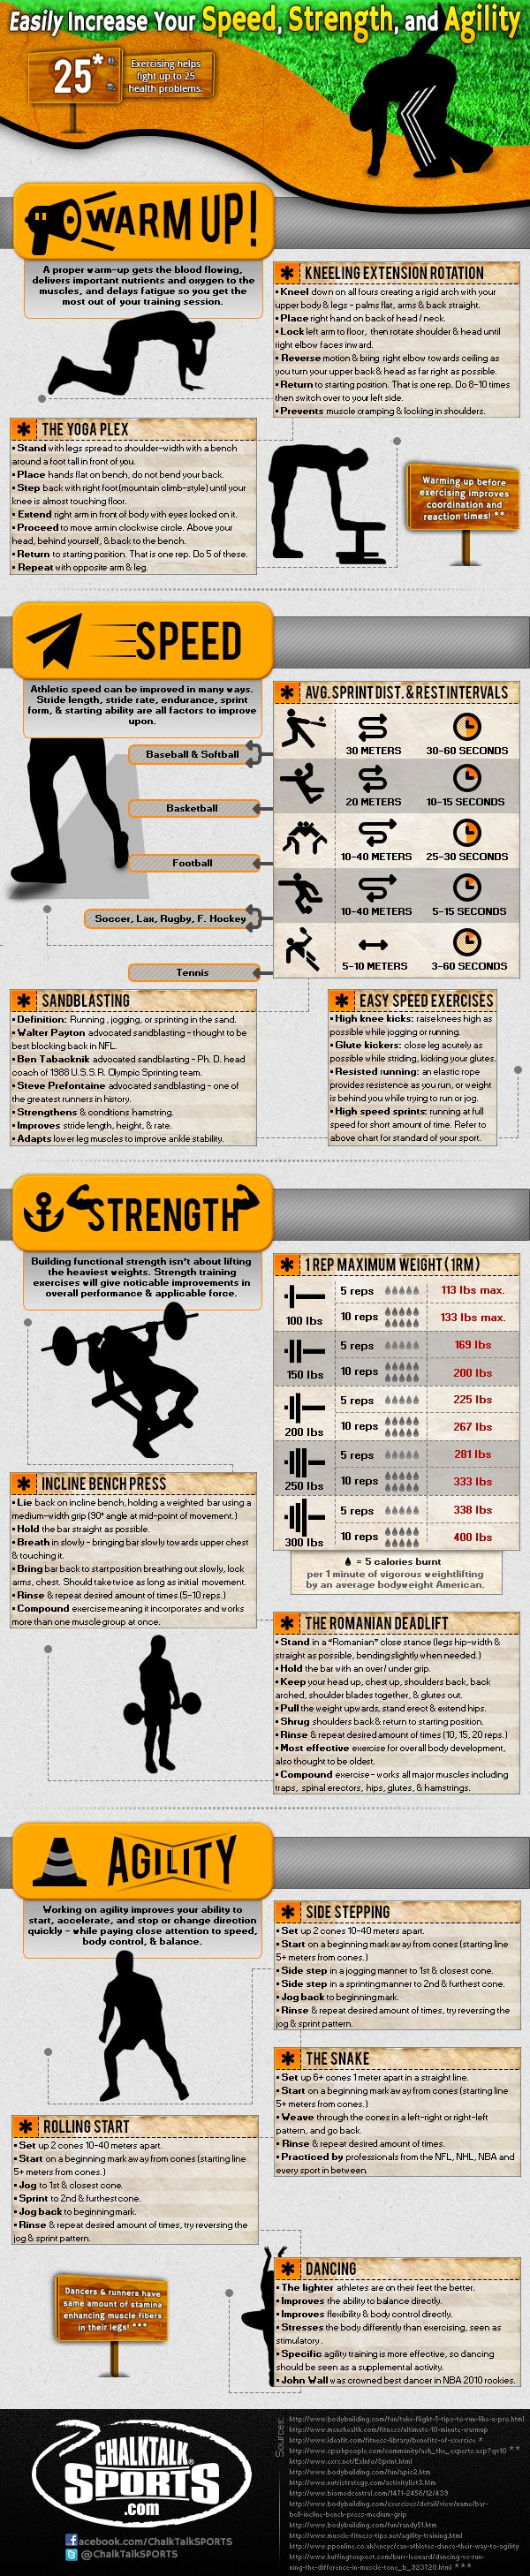 Easily Increase Your Speed, Strength and Agility[INFOGRAPHIC]